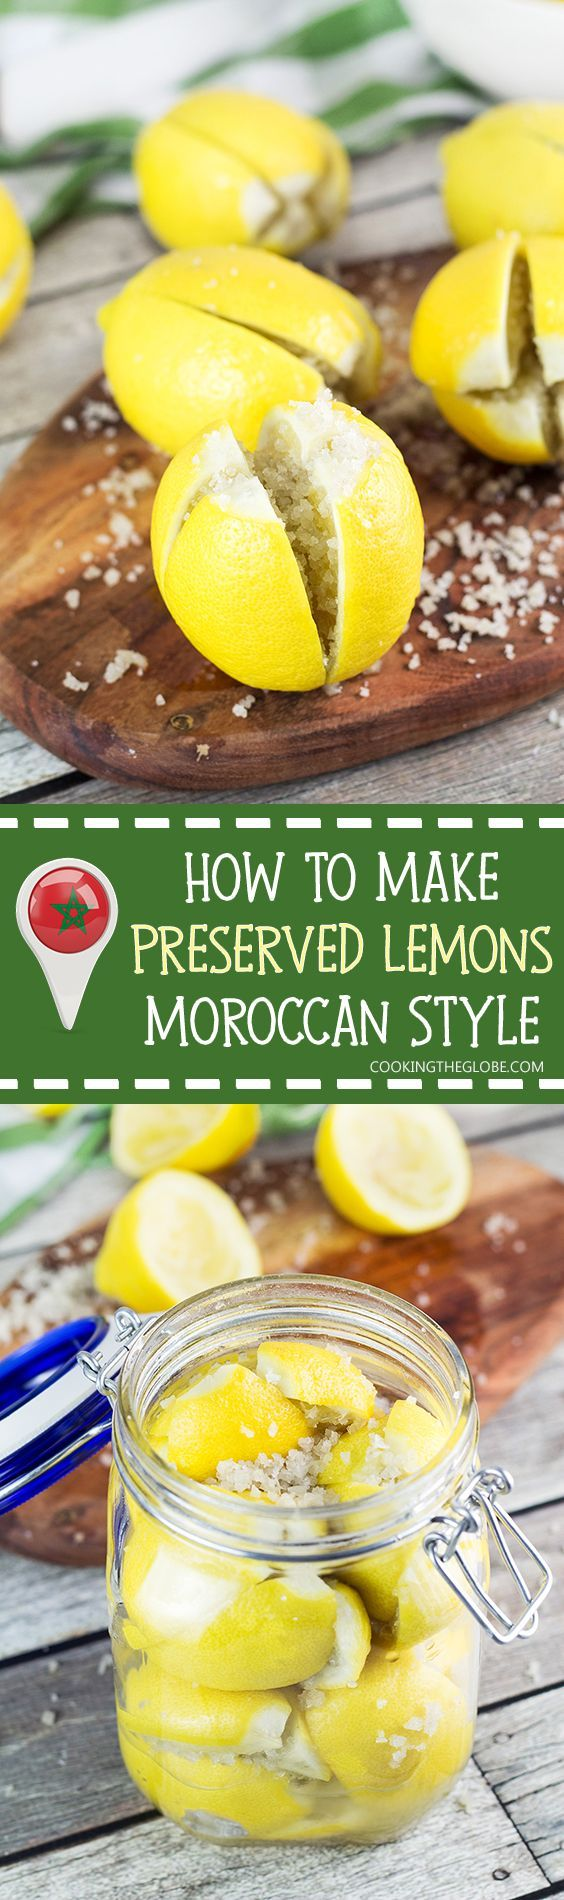 Moroccan Preserved Lemons are a must in every kitchen pantry. They require only 2 ingredients to make and can be used in an array of dishes! | http://cookingtheglobe.com